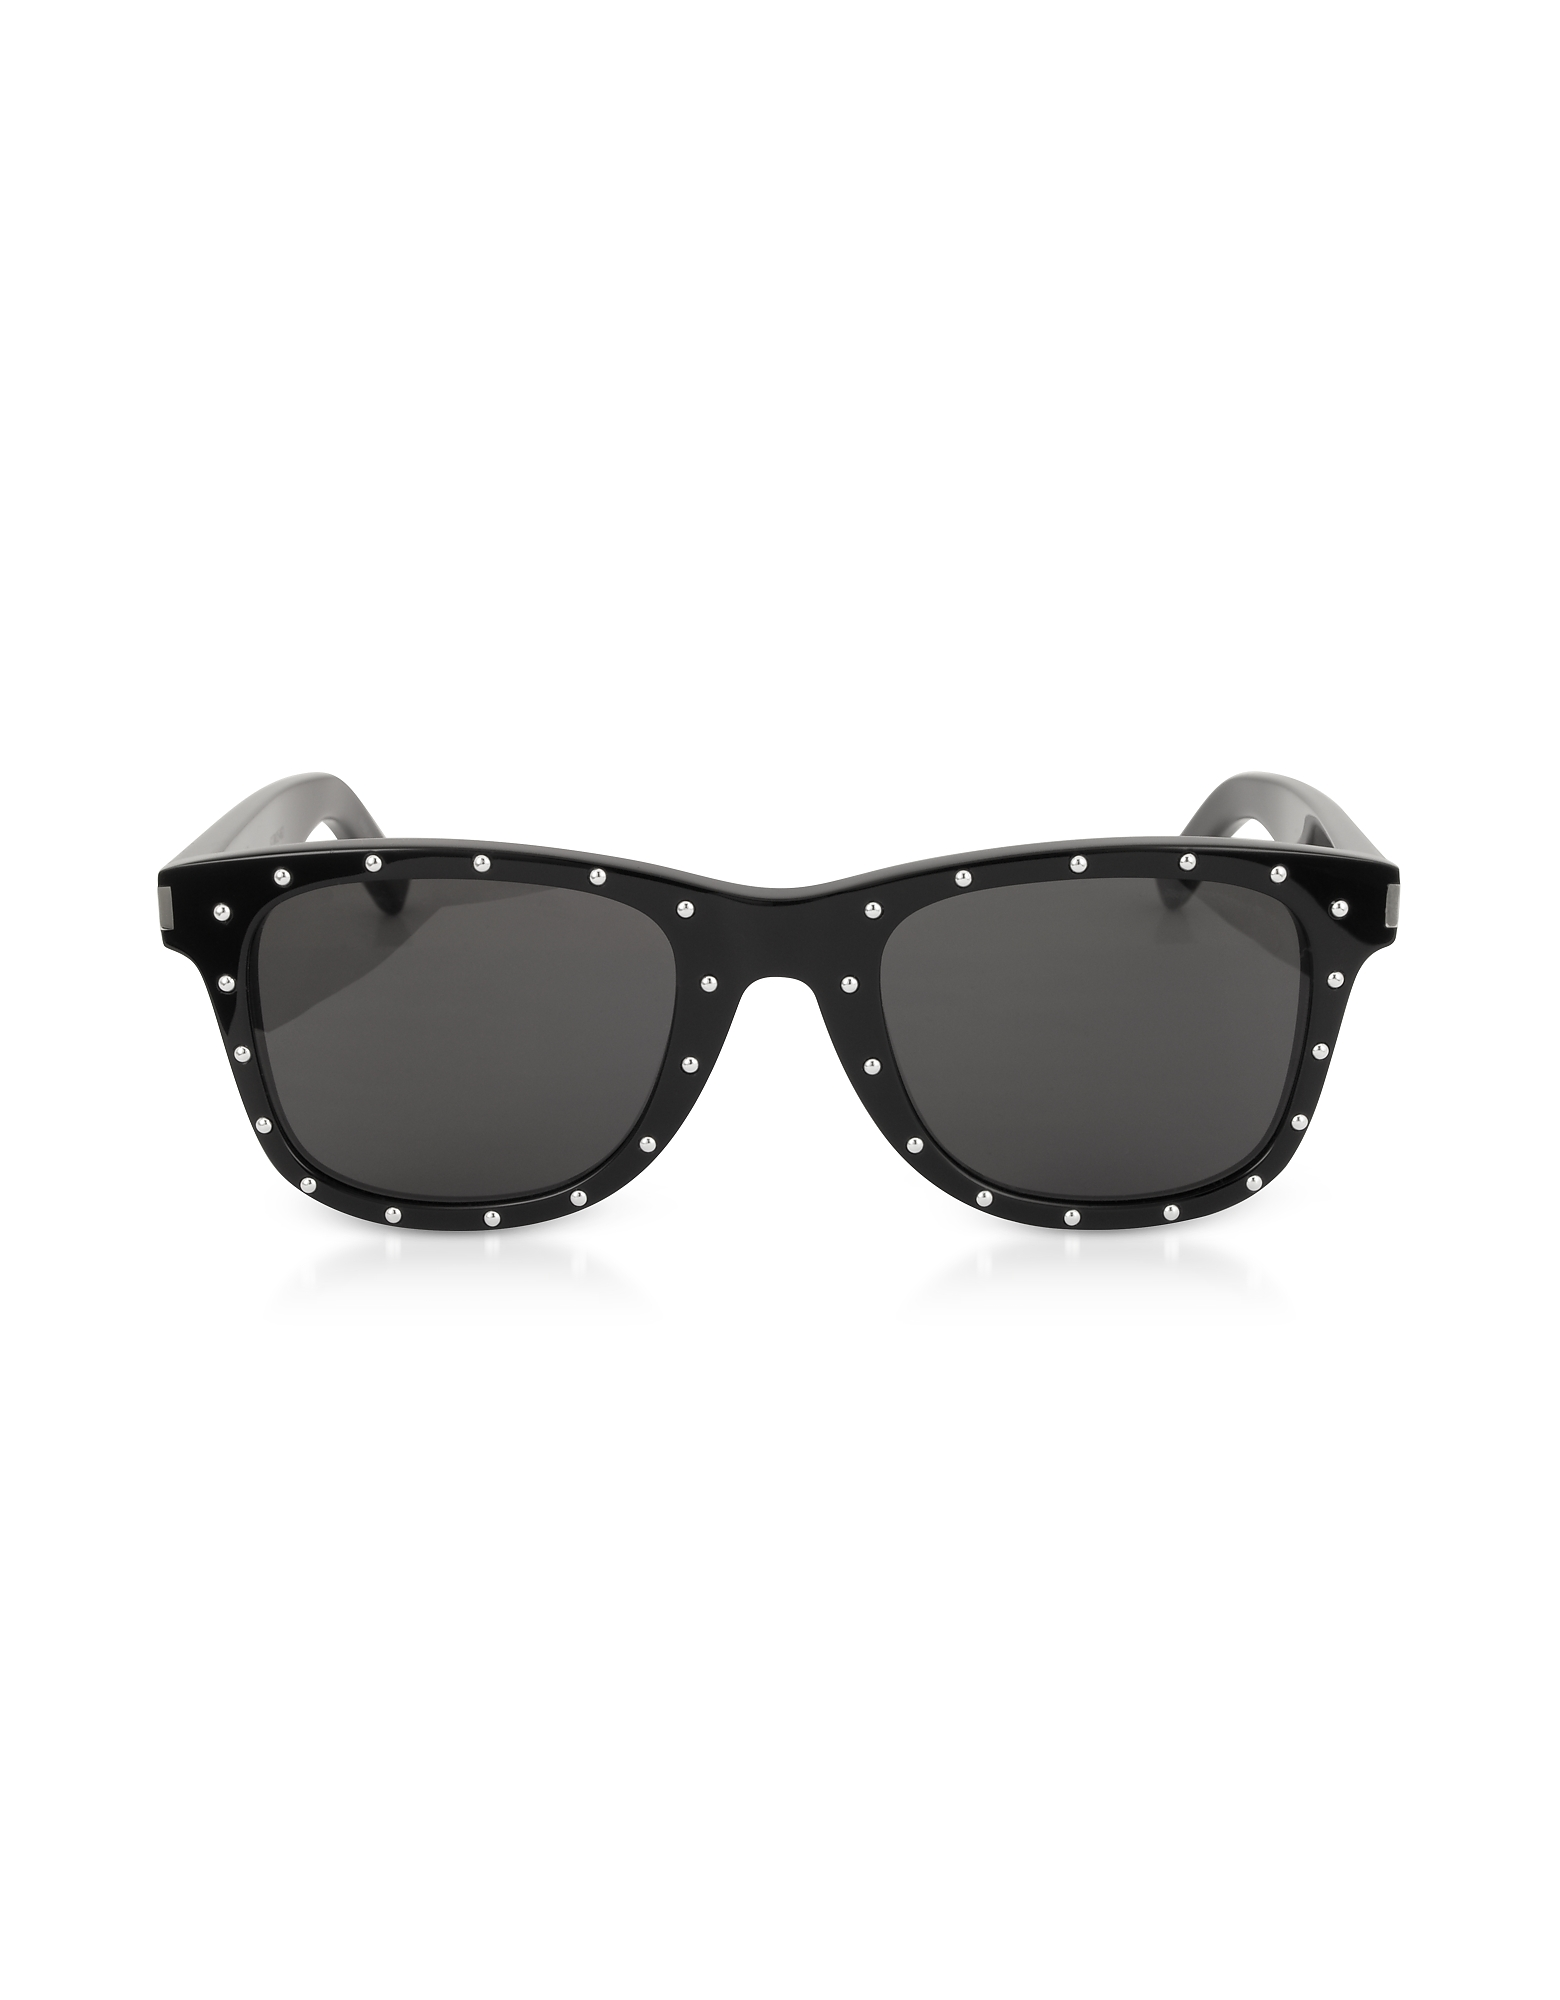 Saint Laurent Designer Sunglasses, SL 51-029 Black Studded Acetate Women's Sunglasses